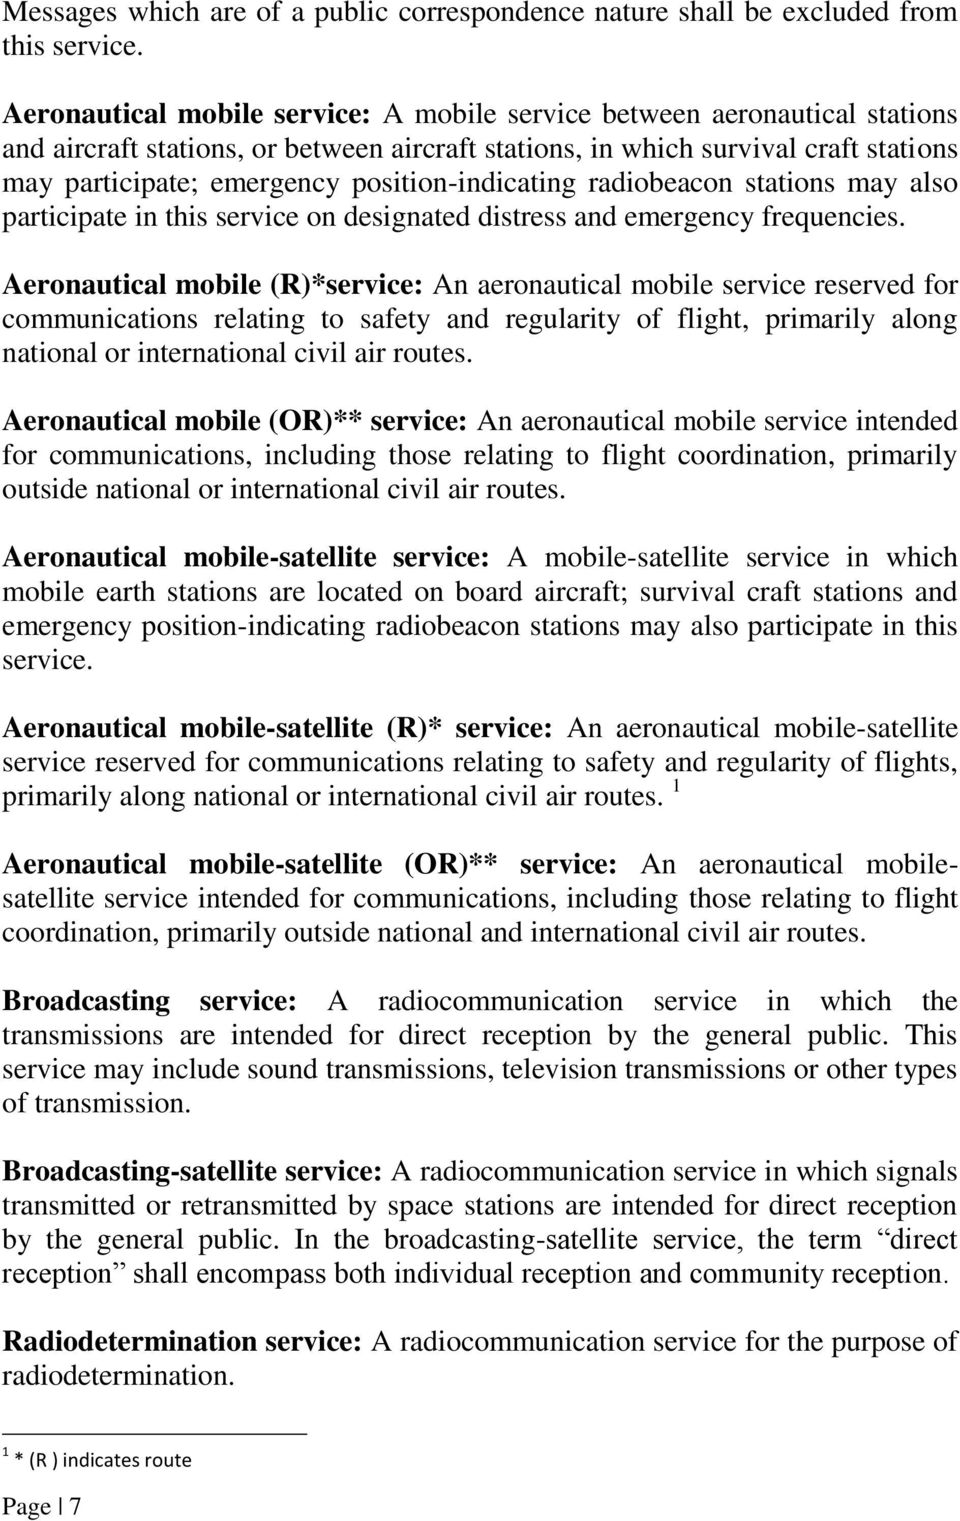 position-indicating radiobeacon stations may also participate in this service on designated distress and emergency frequencies.